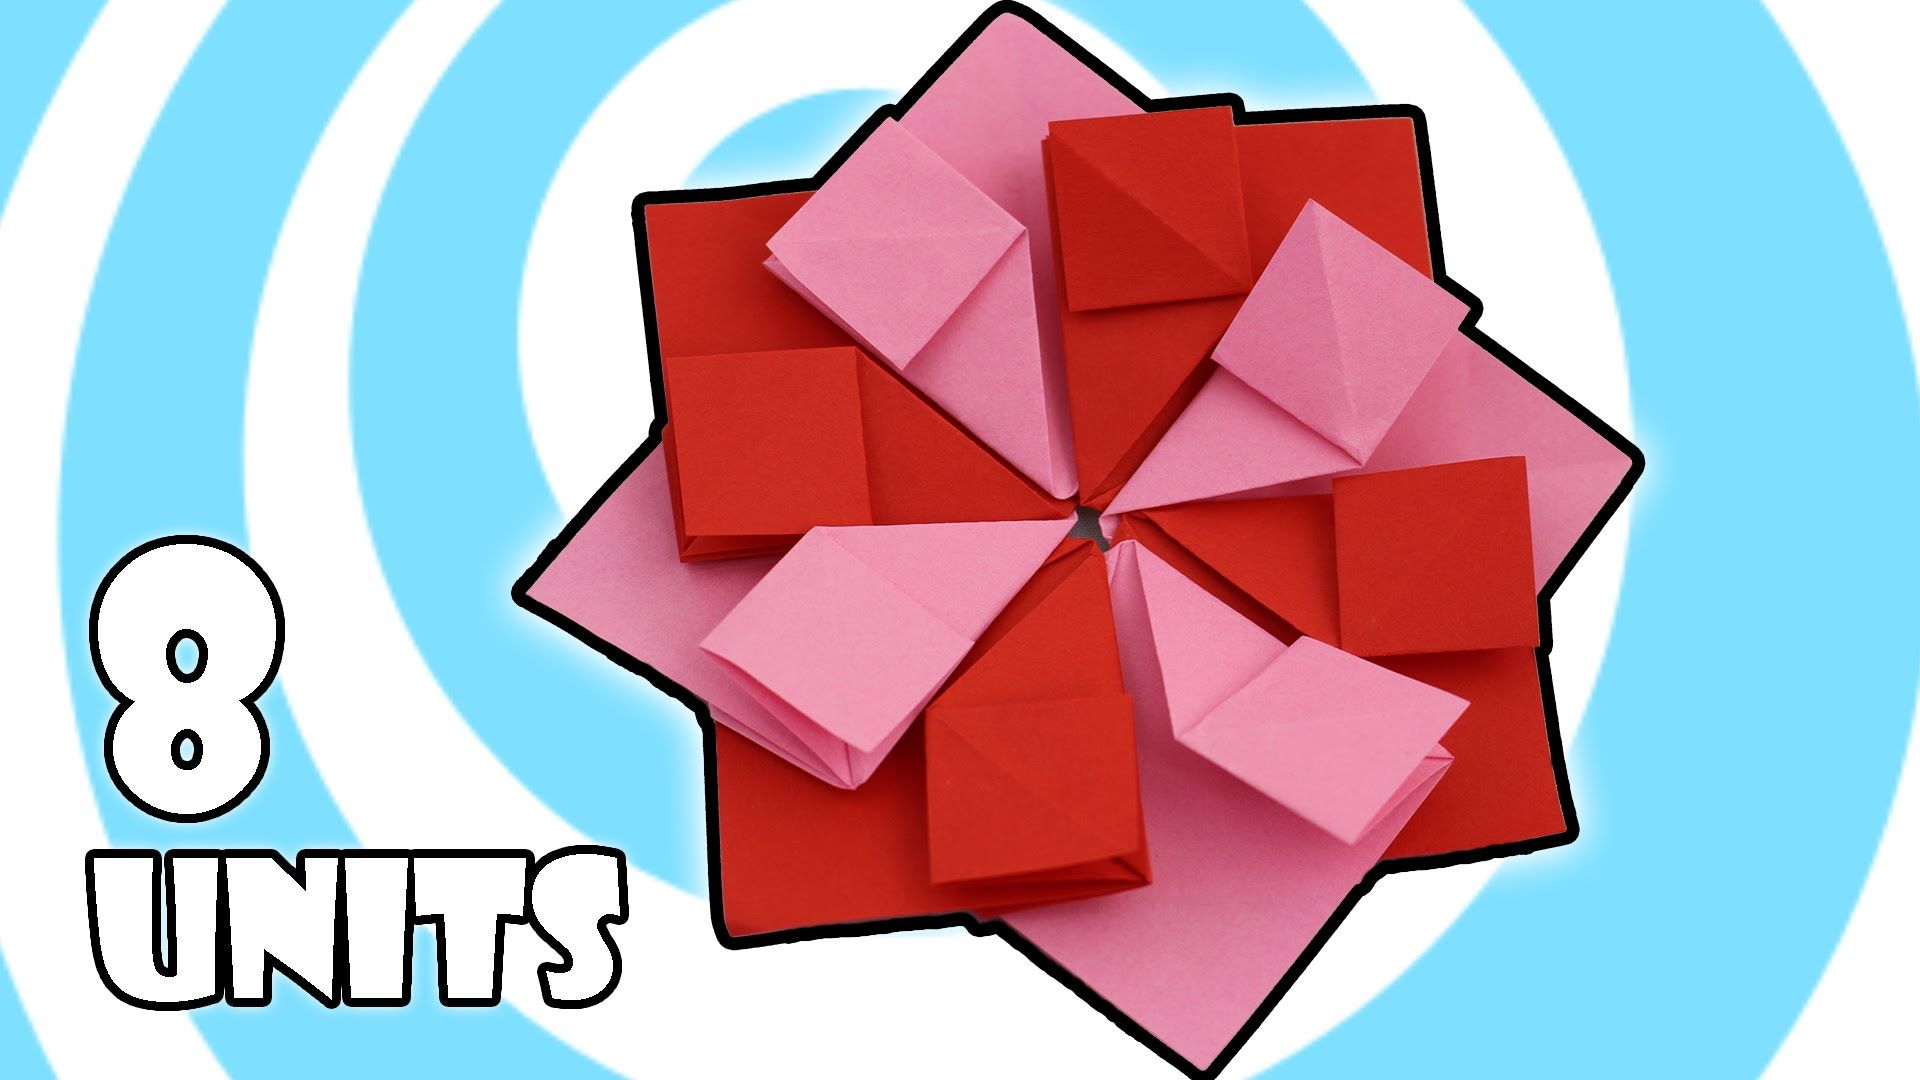 How To Make An Easy Modular Origami Tea Bag Flower Instructions